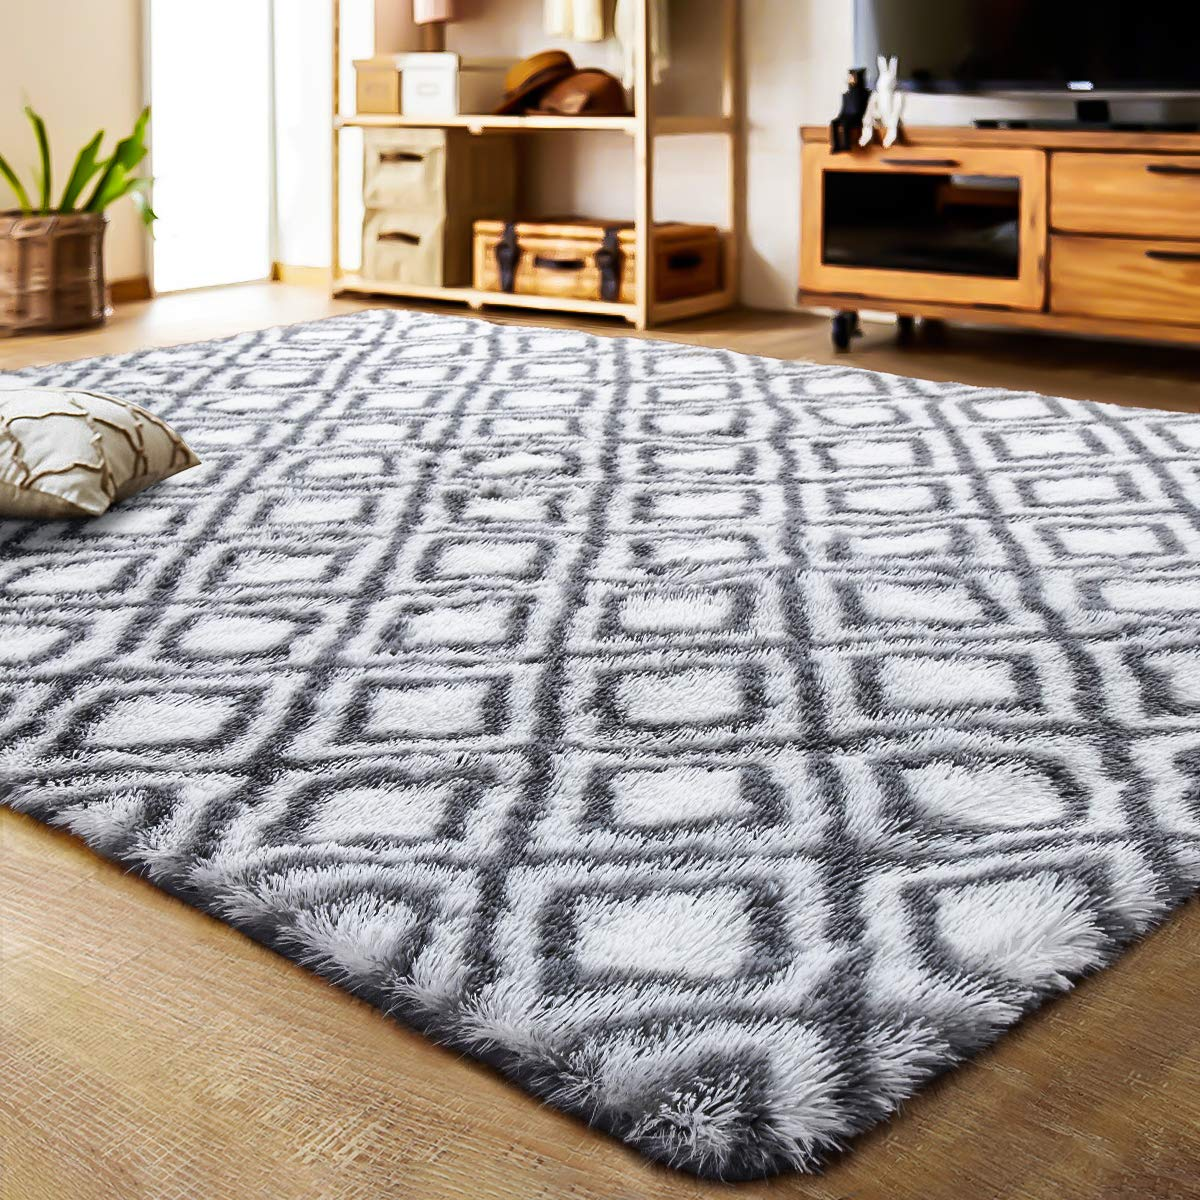 5x8 Feet, Grey//White, HS4 Extra Soft and Comfy Carpet LOCHAS Luxury Velvet Shag Area Rug Mordern Indoor Plush Fluffy Rugs Geometric Moroccan Rugs for Bedroom Living Room Girls Kids Nursery